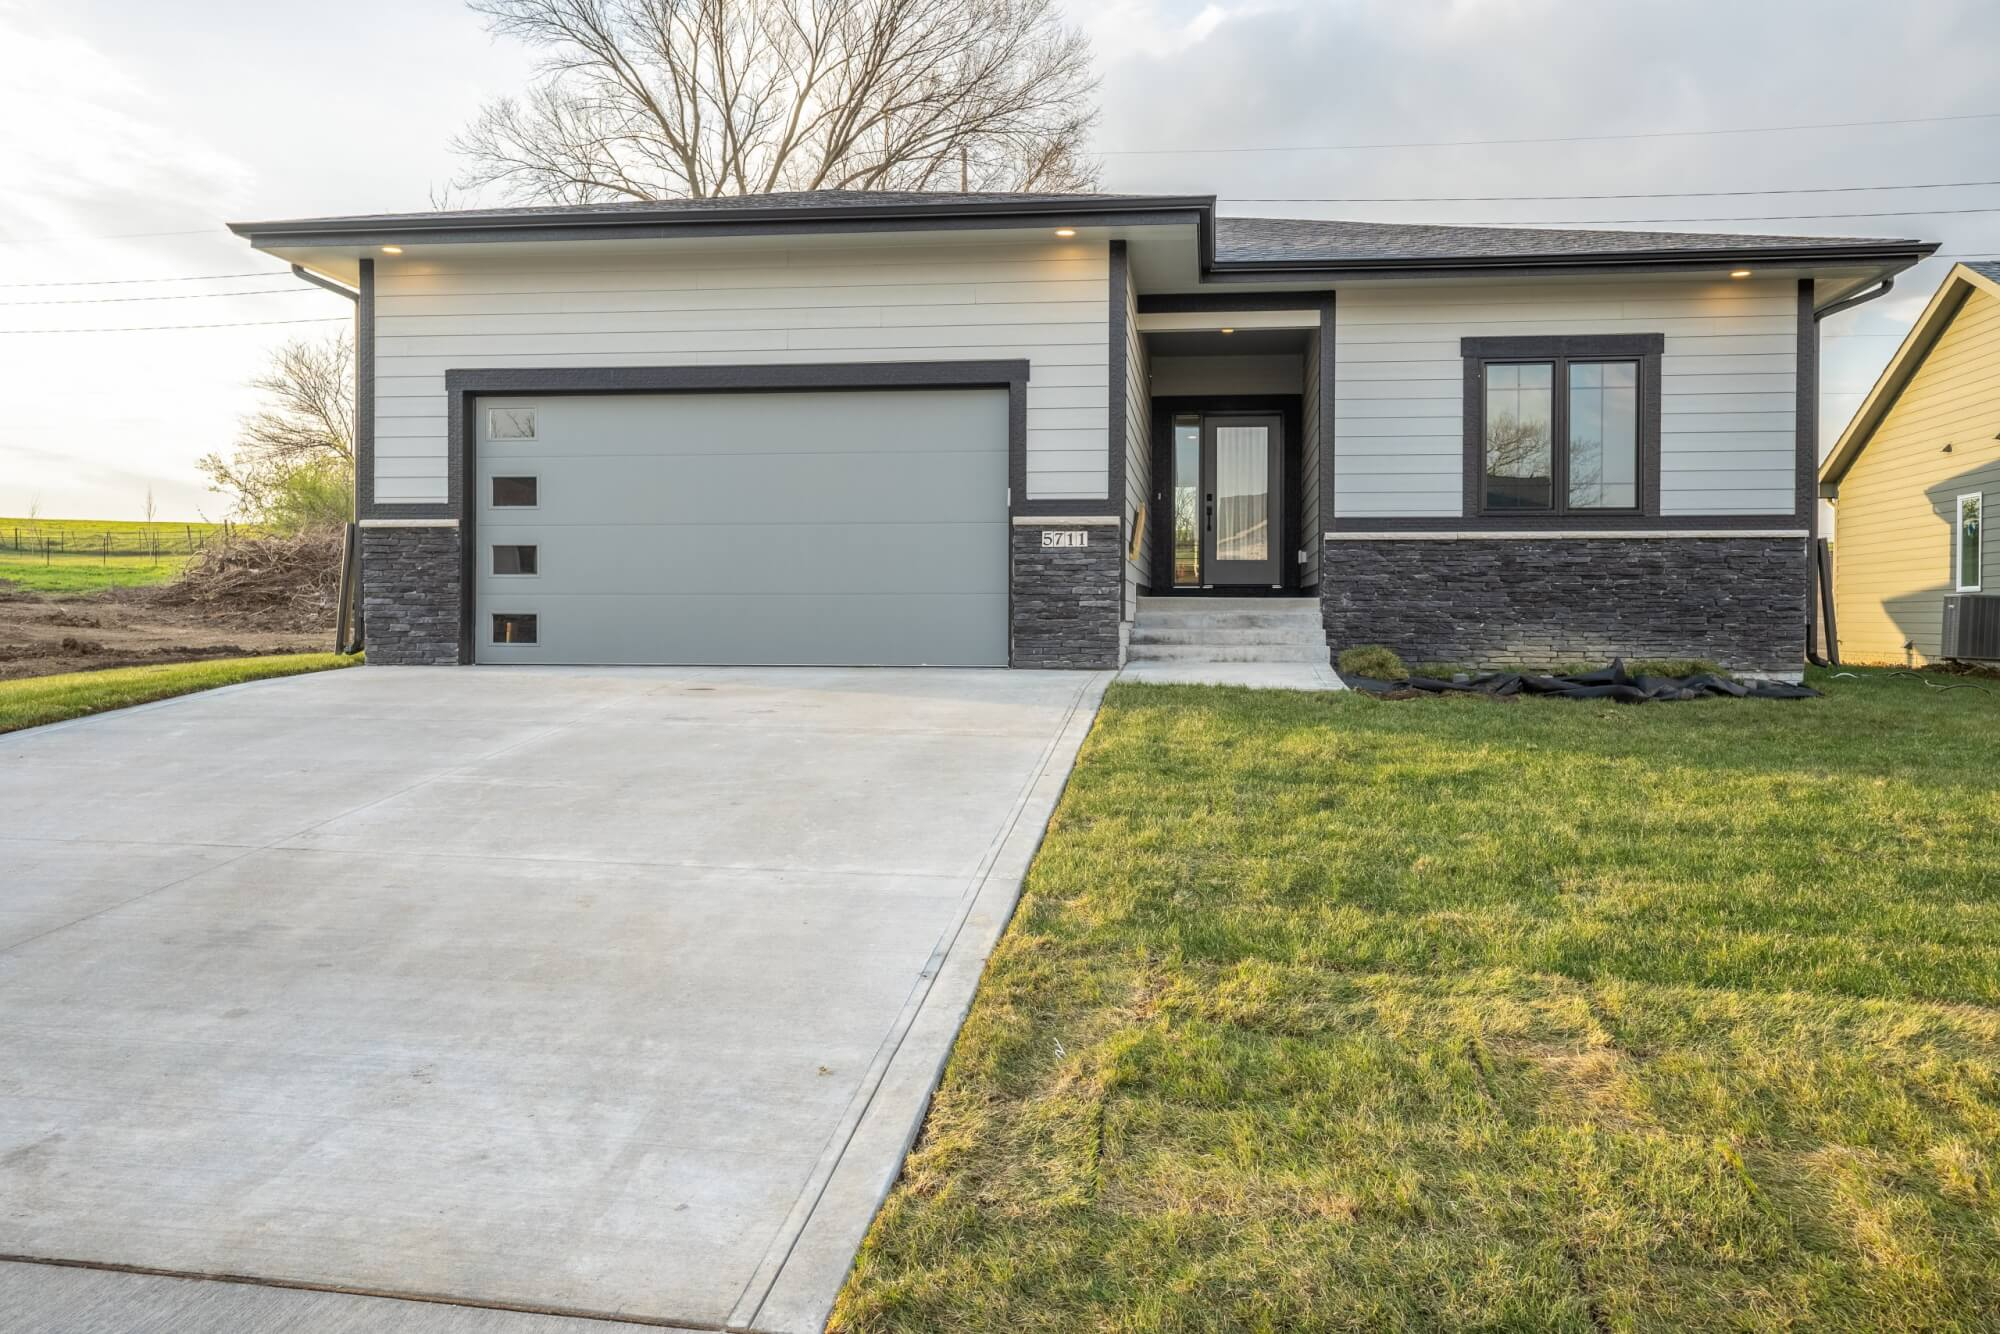 A home with white siding and grey stone, built by Kruse Development.